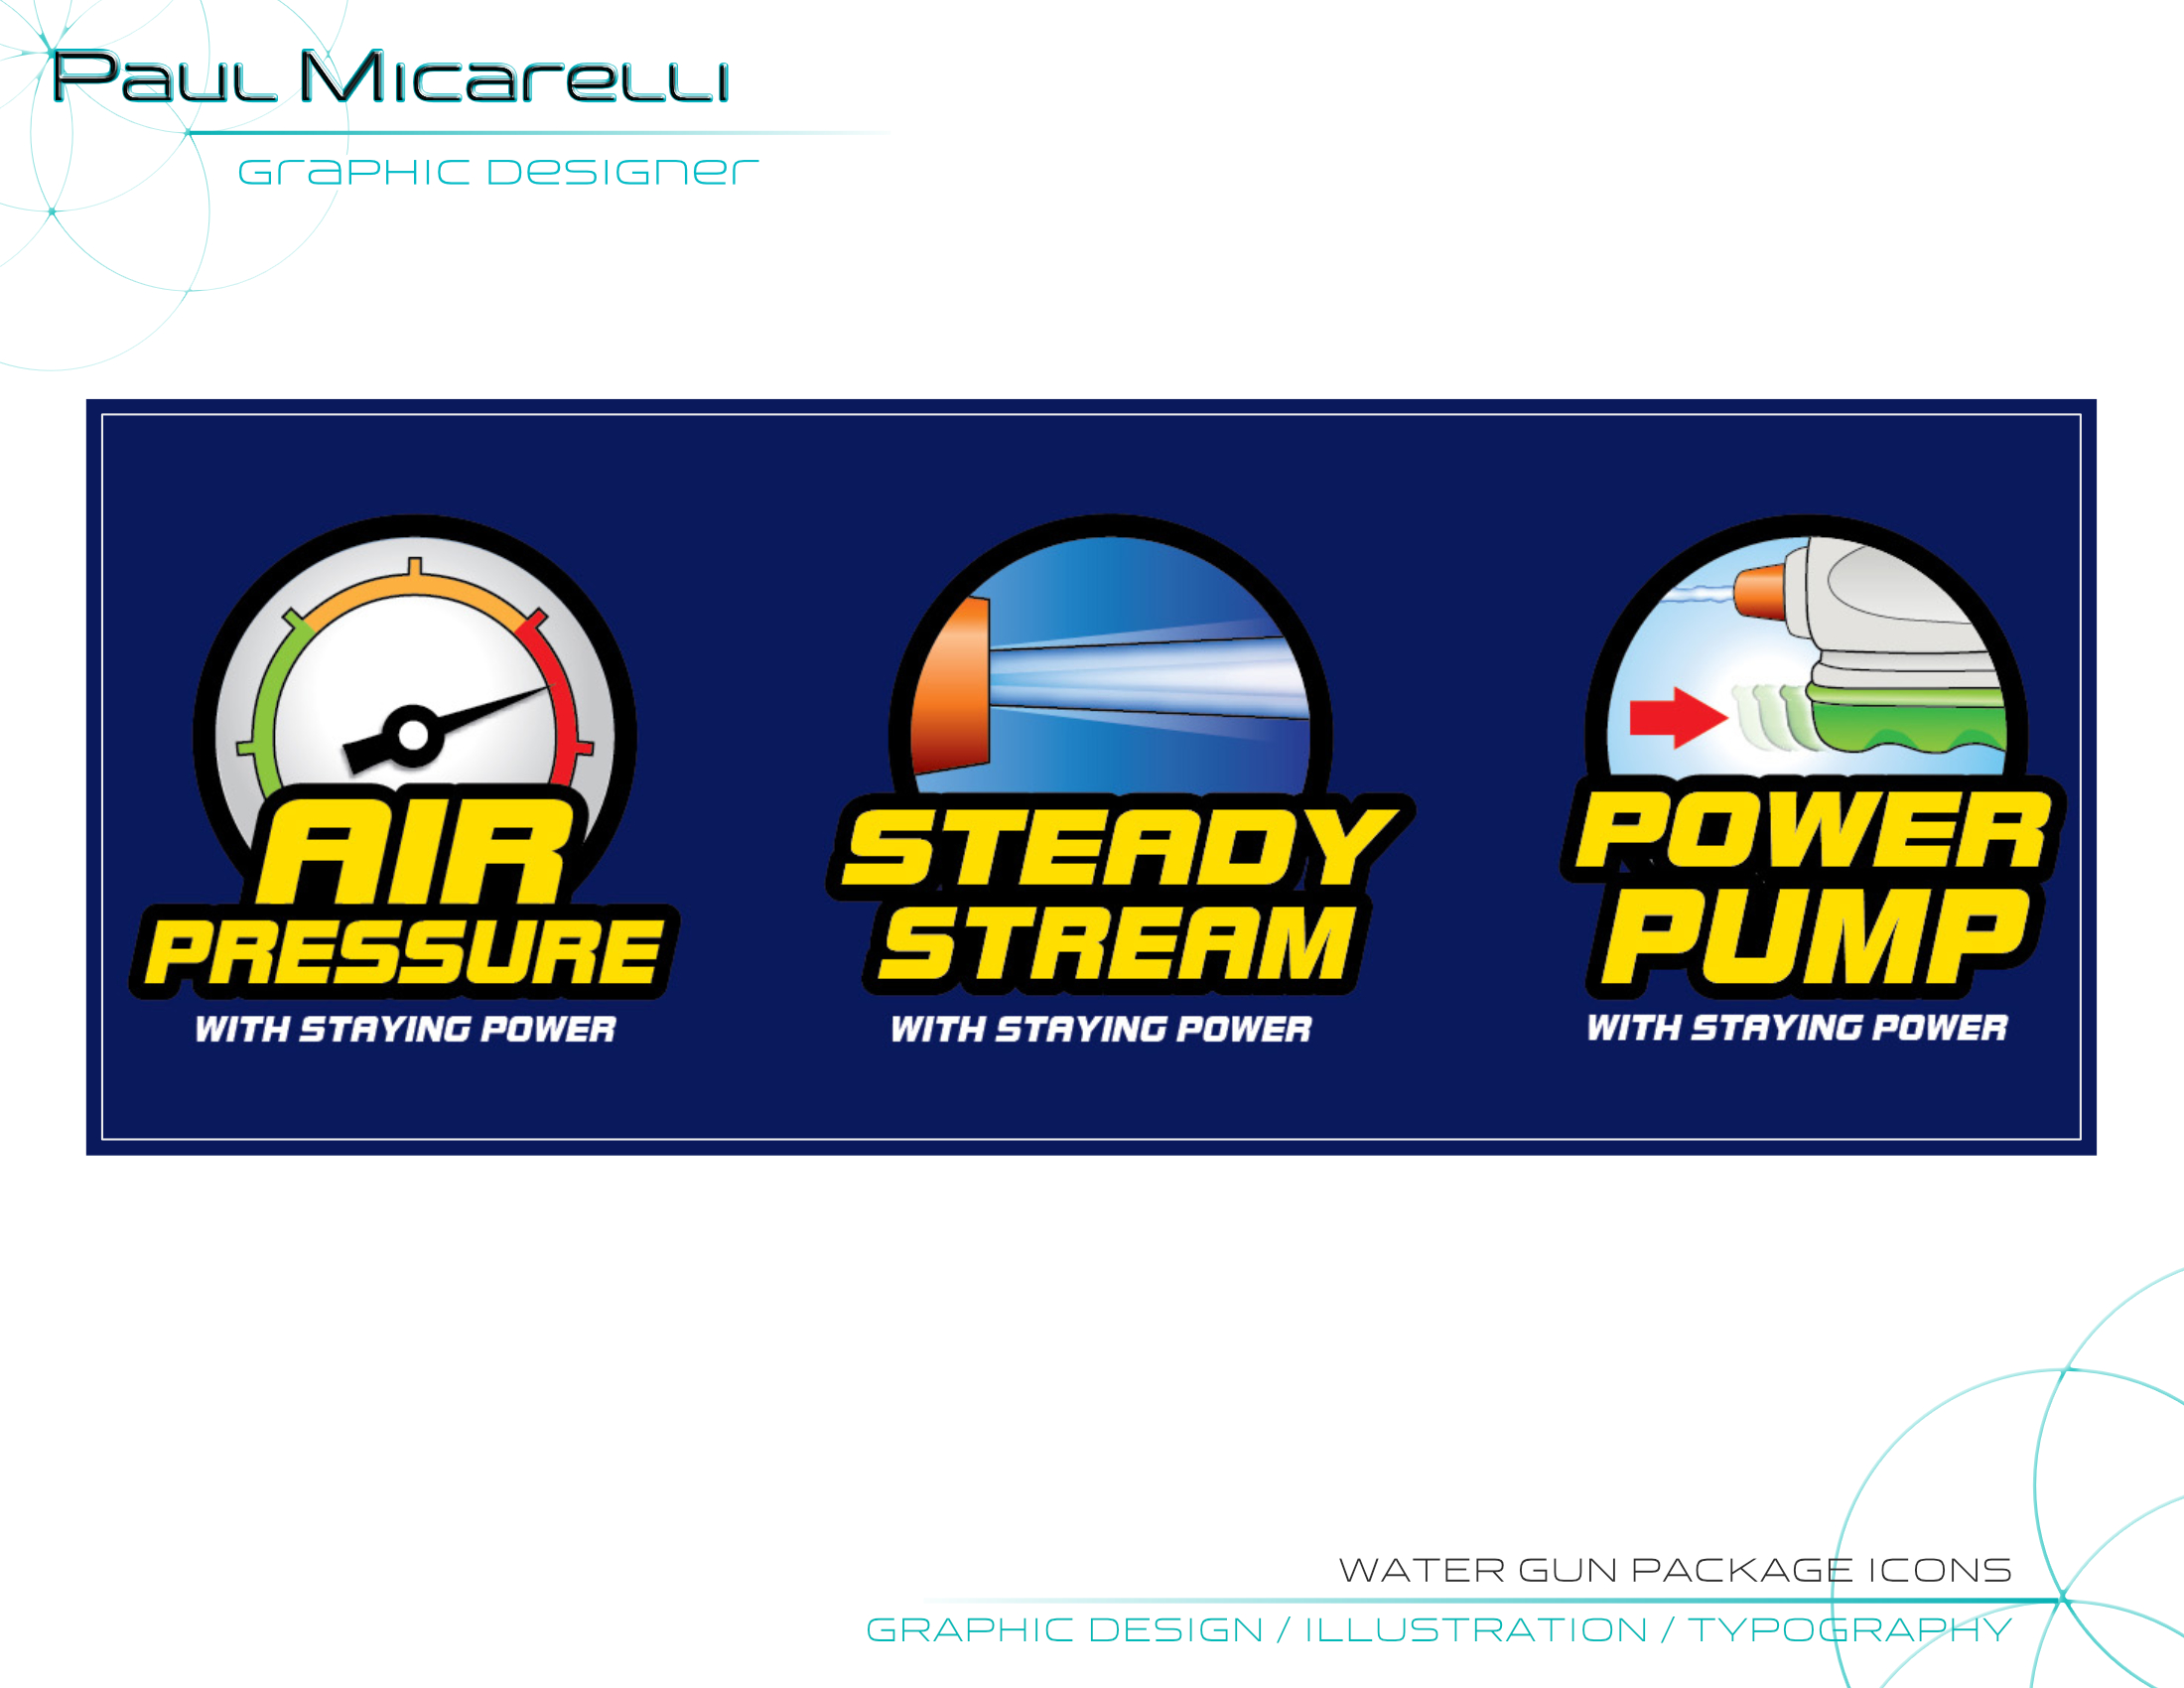 Paul-Micarelli-Water Gun Pkg Icons